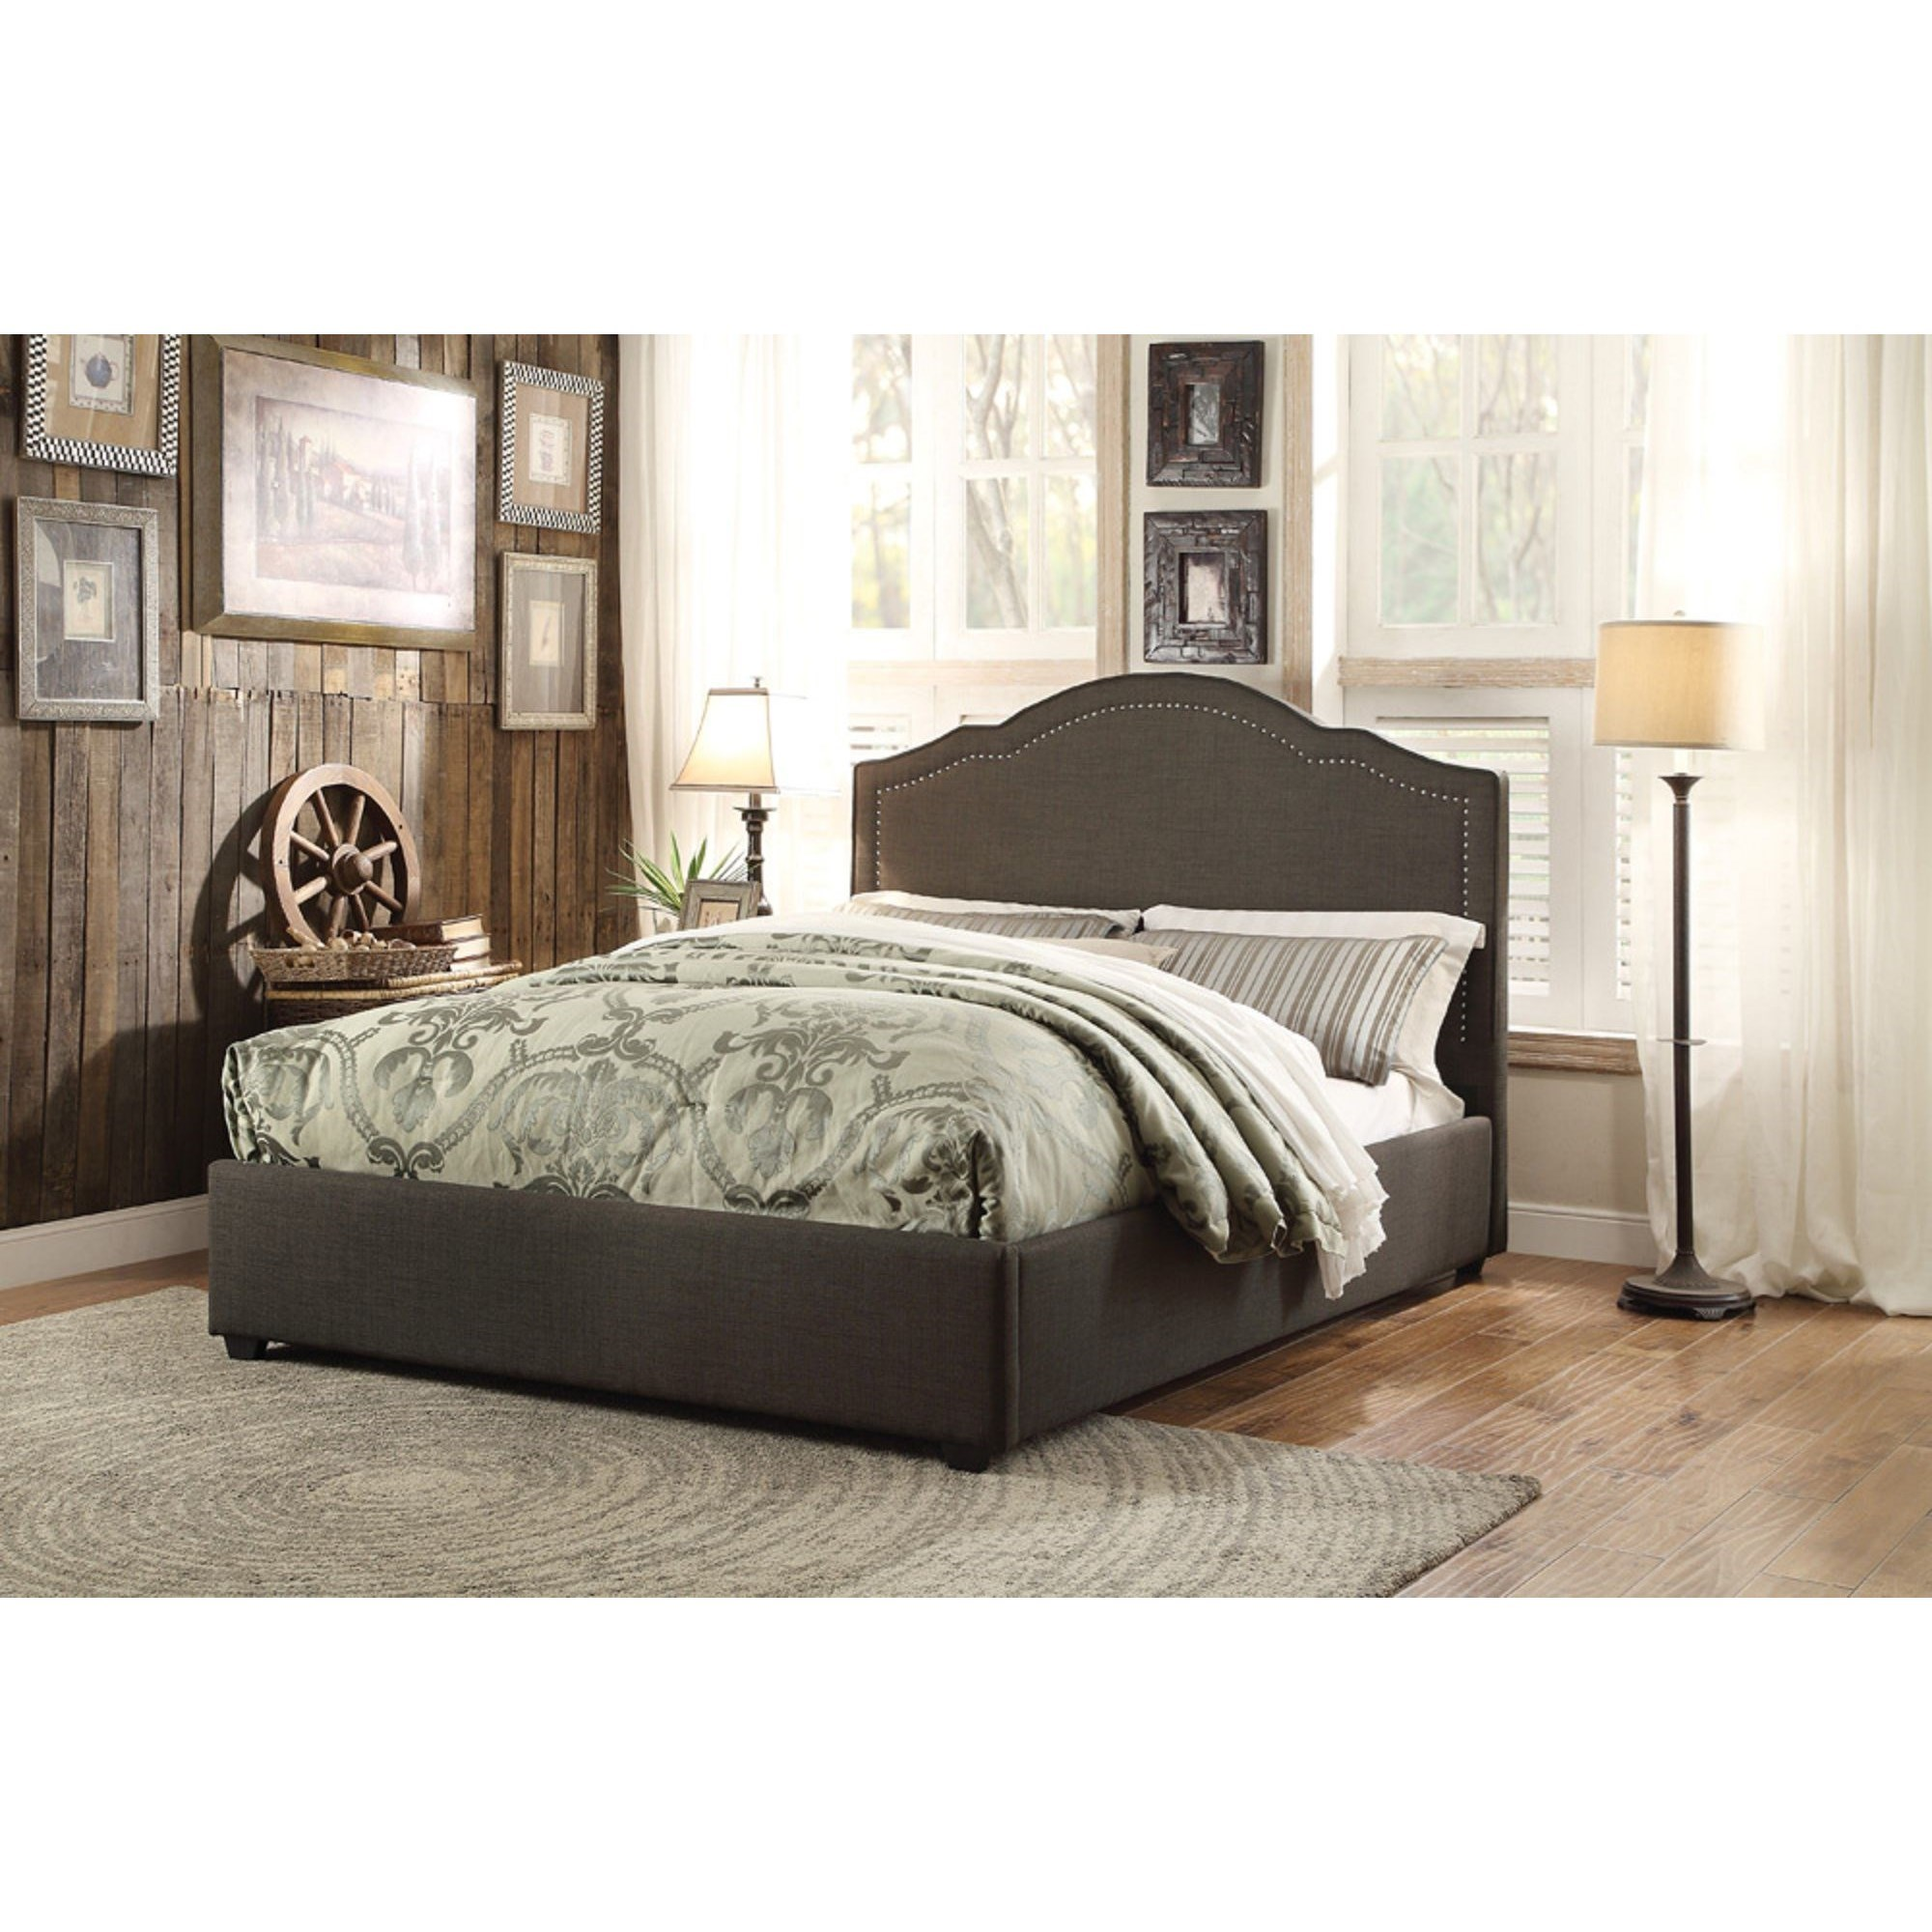 Homelegance Zaira Transitional Queen Upholstered Bed With